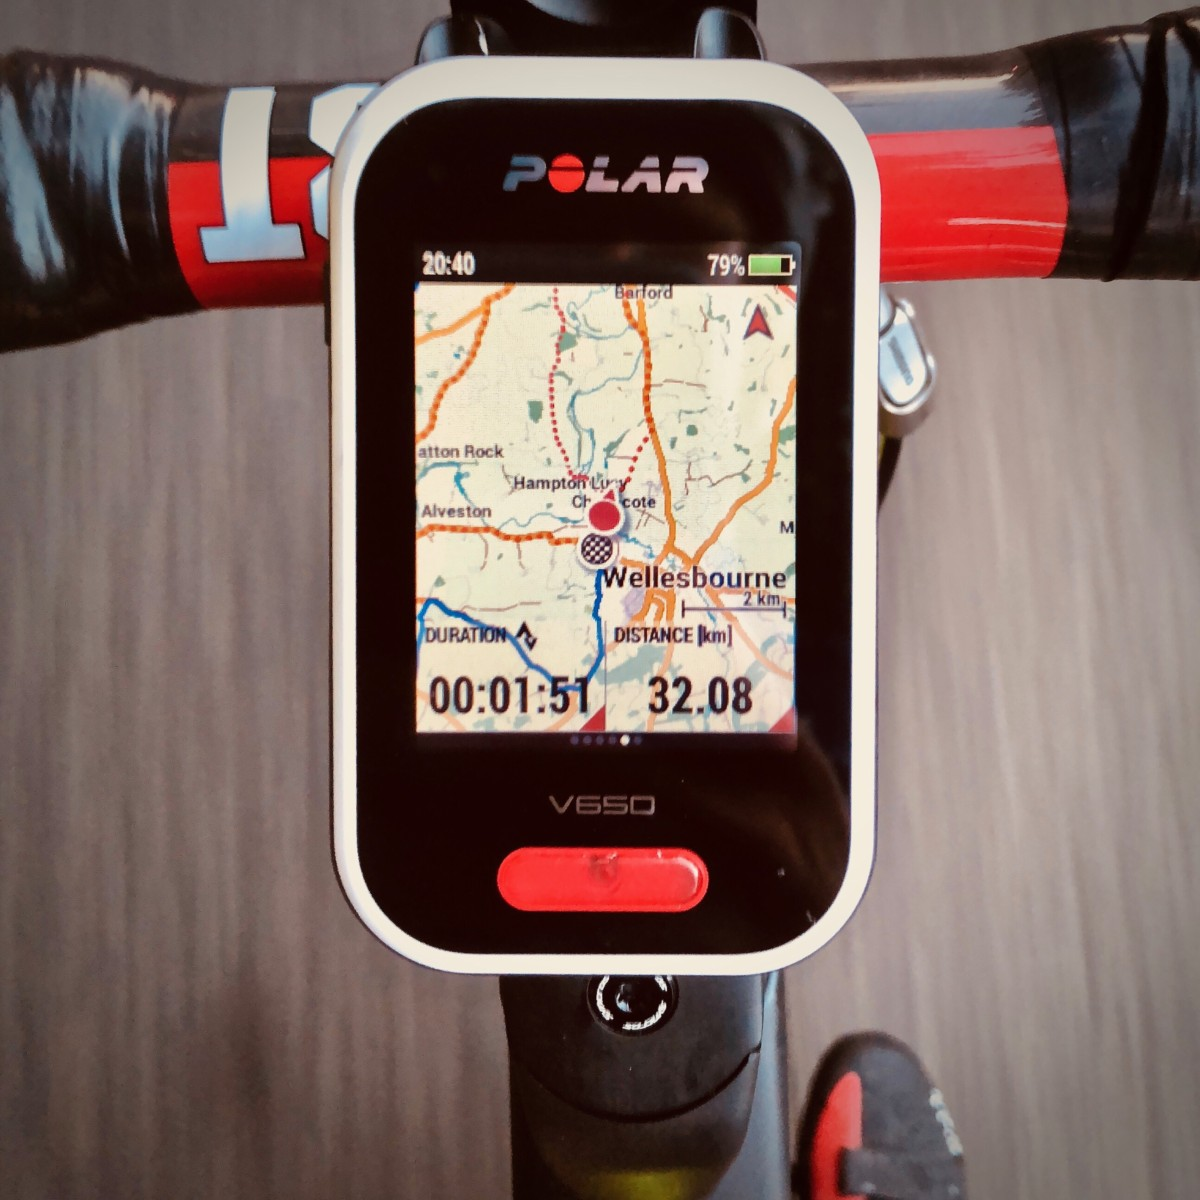 TitaniumGeek img 8282 Polar V650 2018 Cycling Computer Review Cycling Cycling Computers and GPS Units Gear Reviews  Polar GPS cycling   Image of img 8282